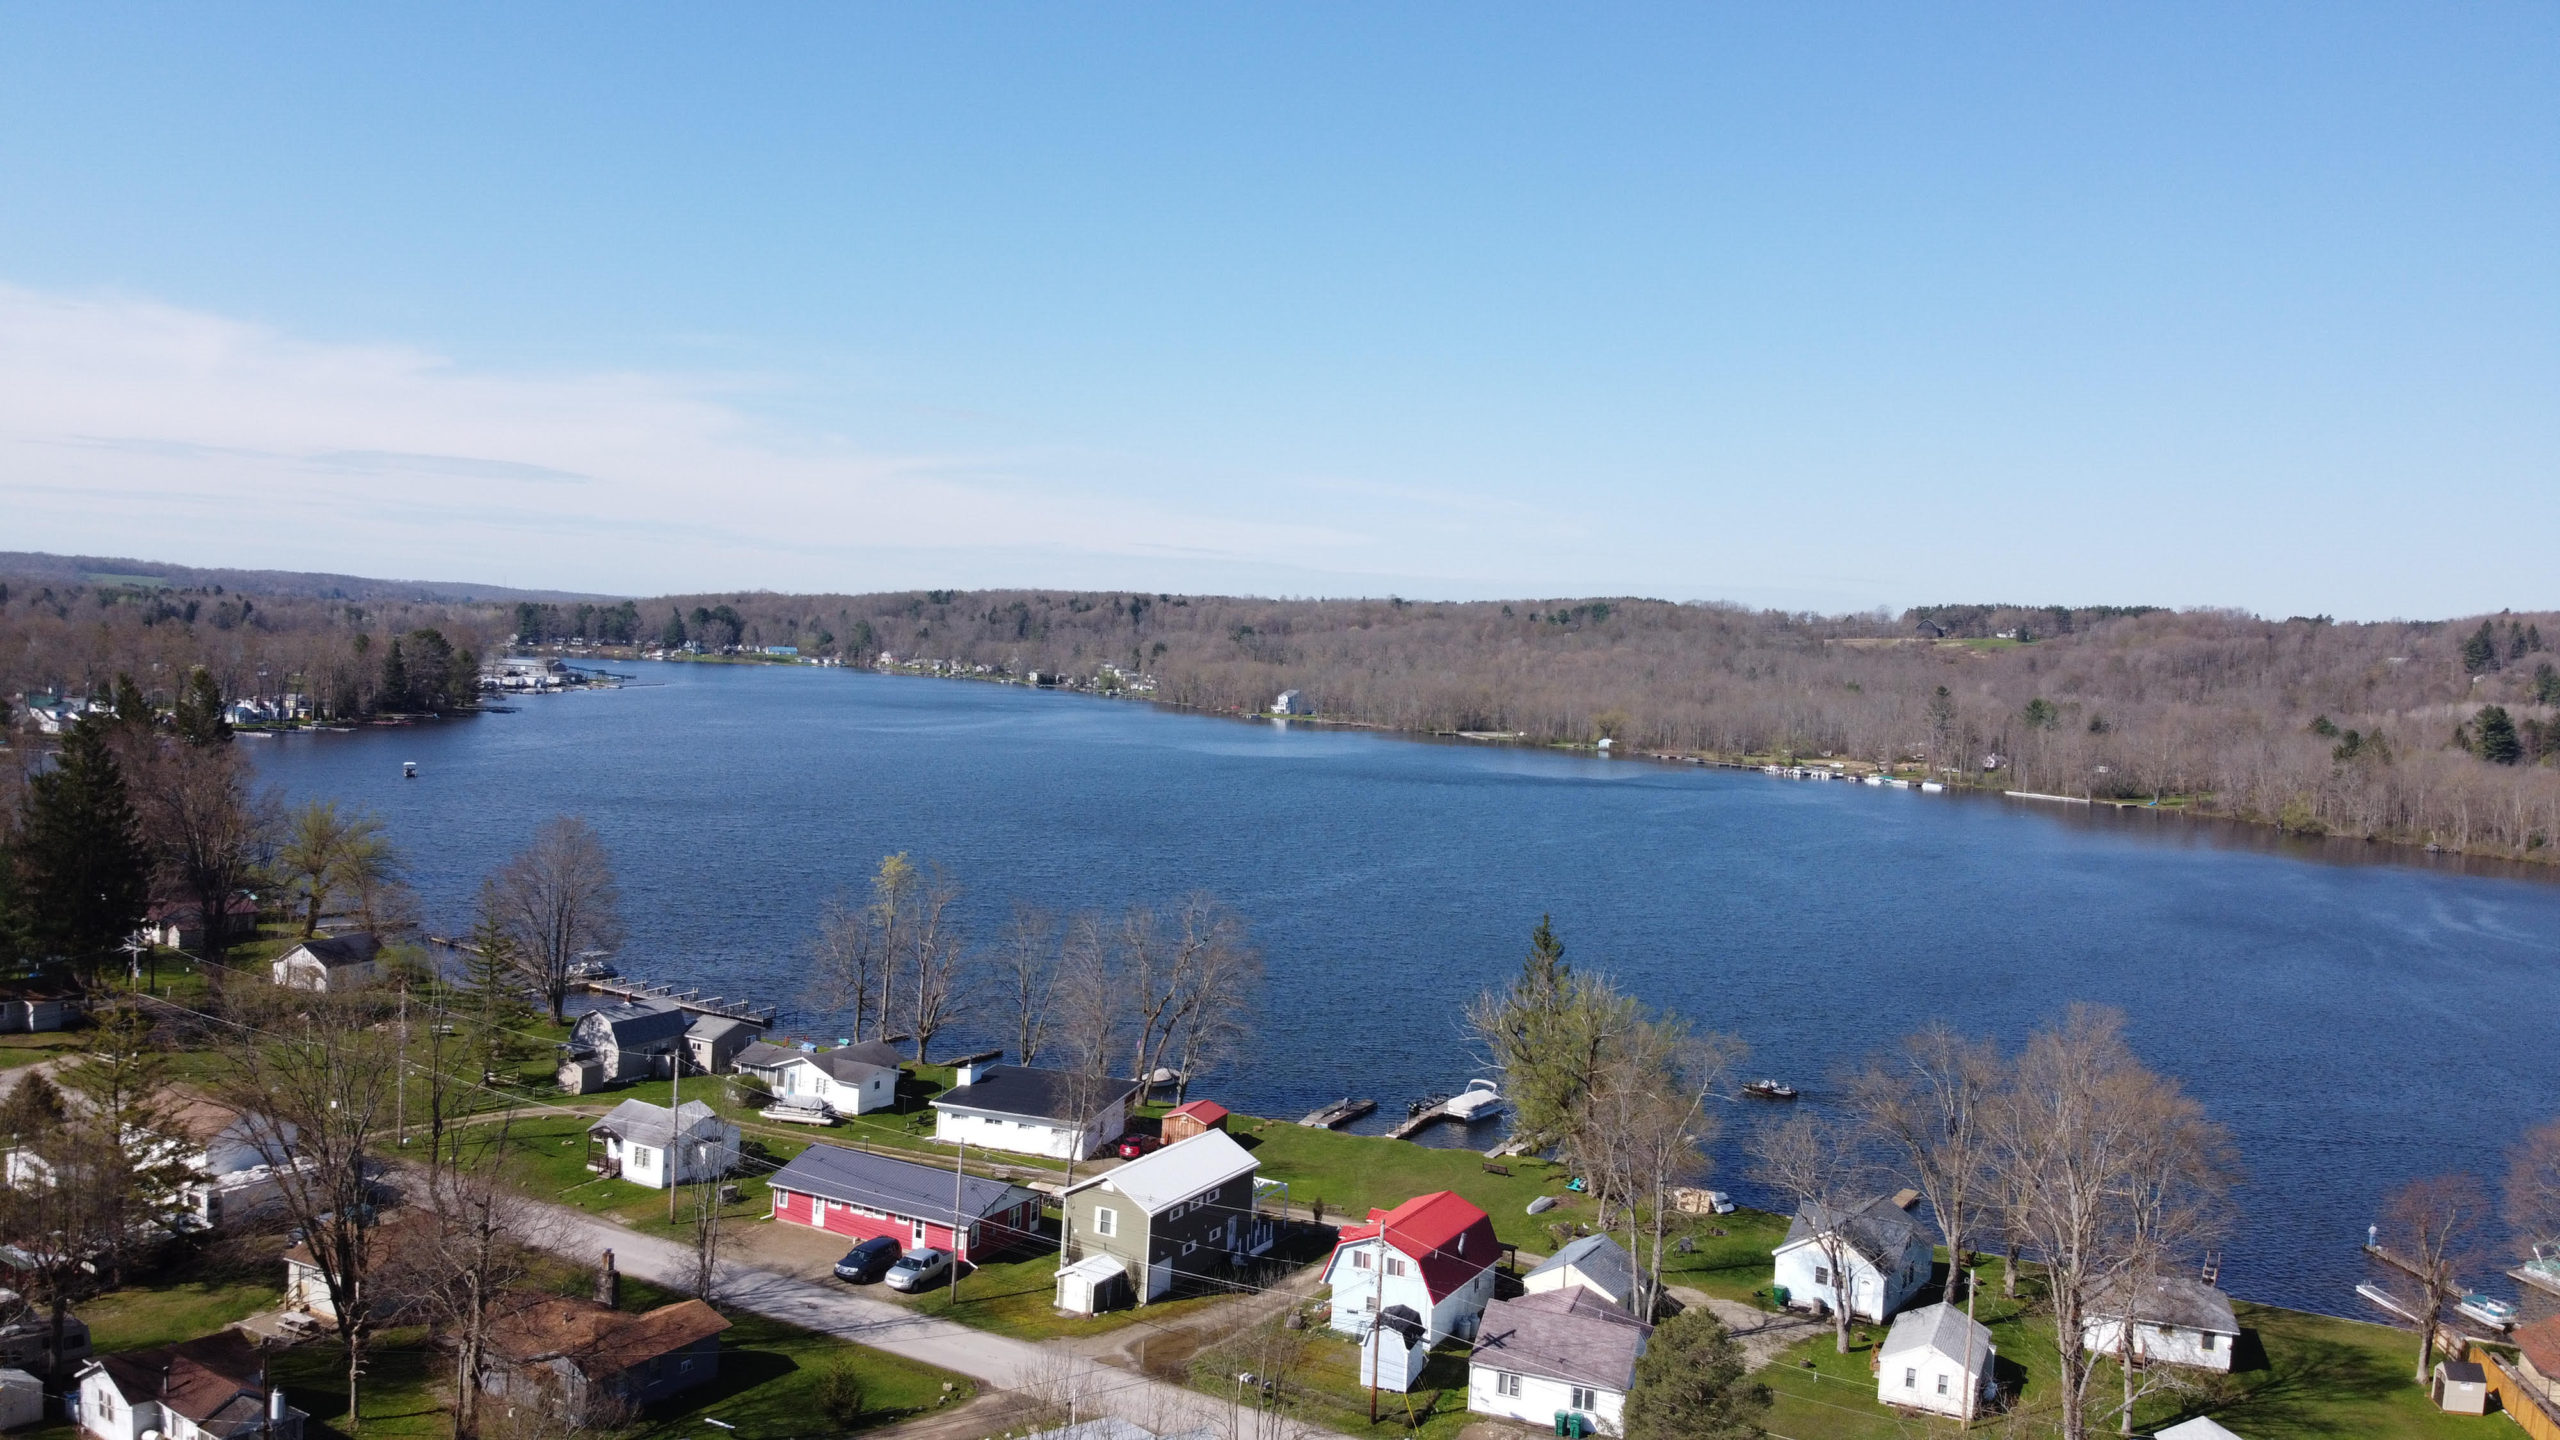 Drone Image Canadohta Lake and Houses